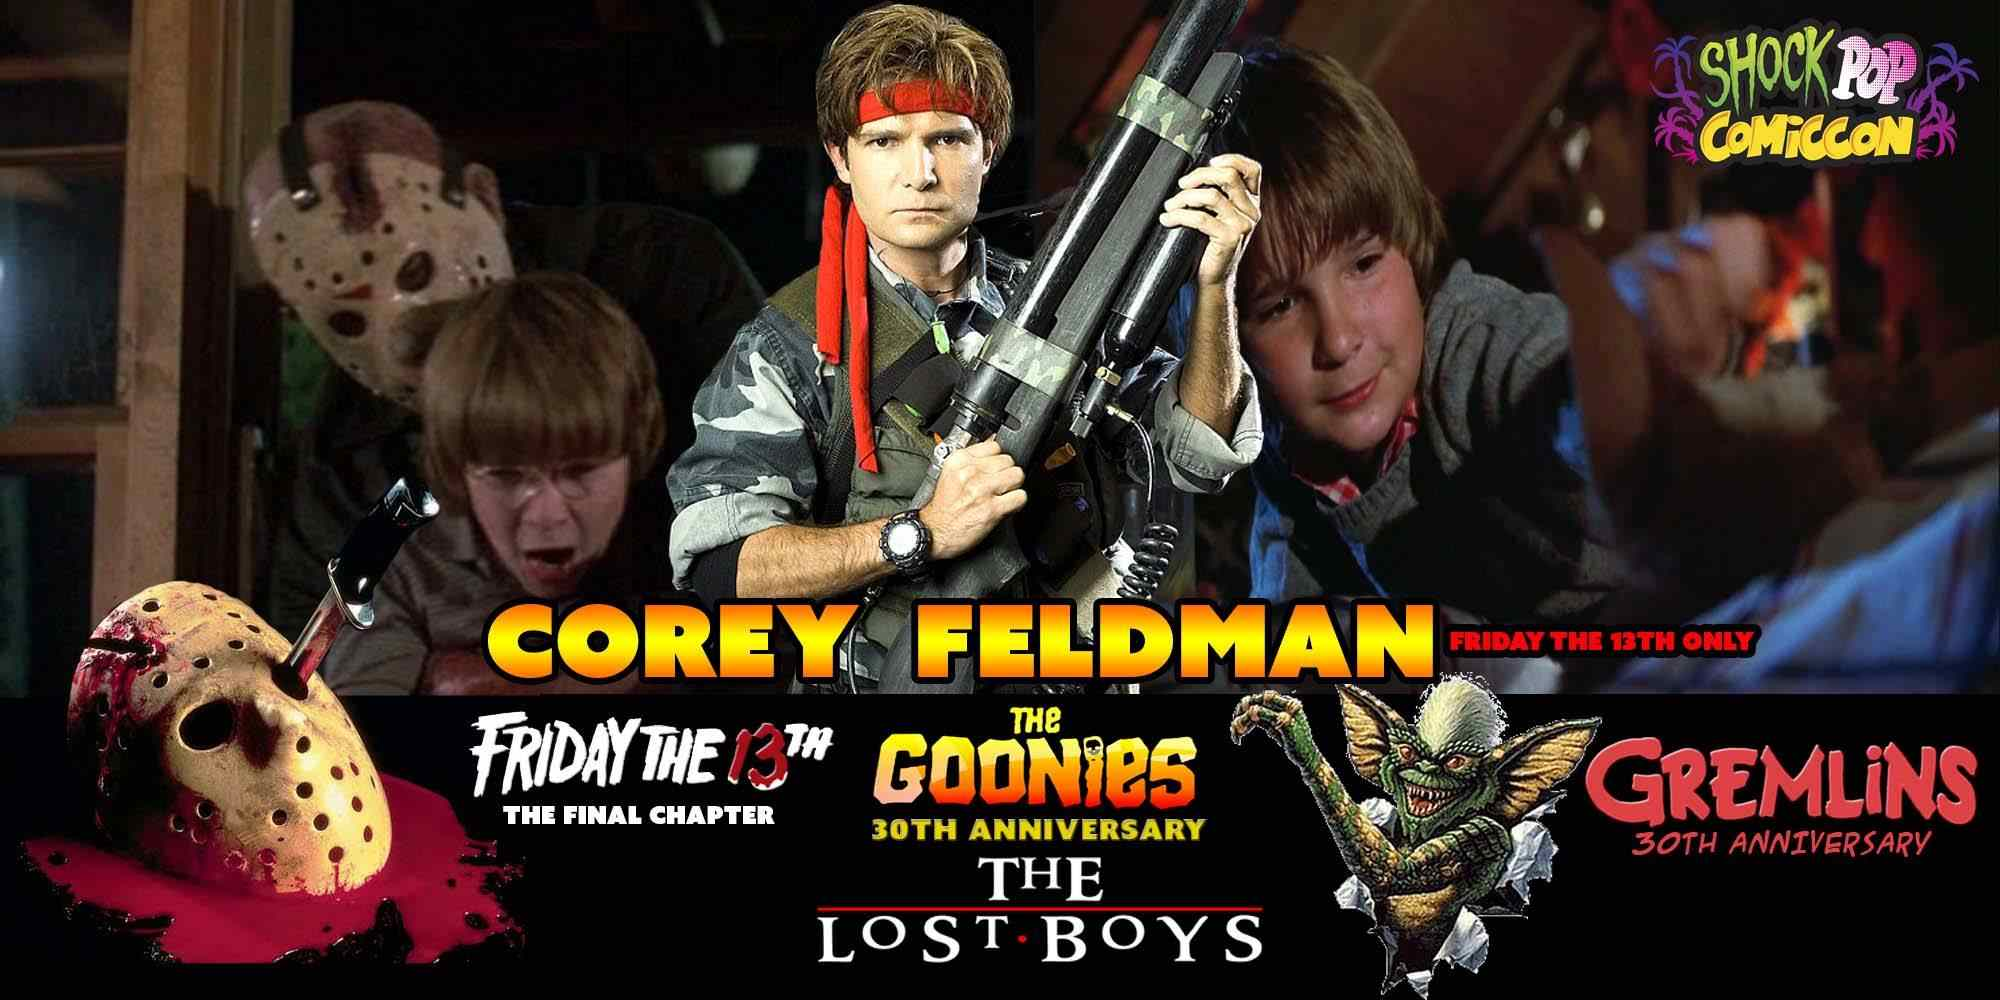 banner for actor Corey Feldman